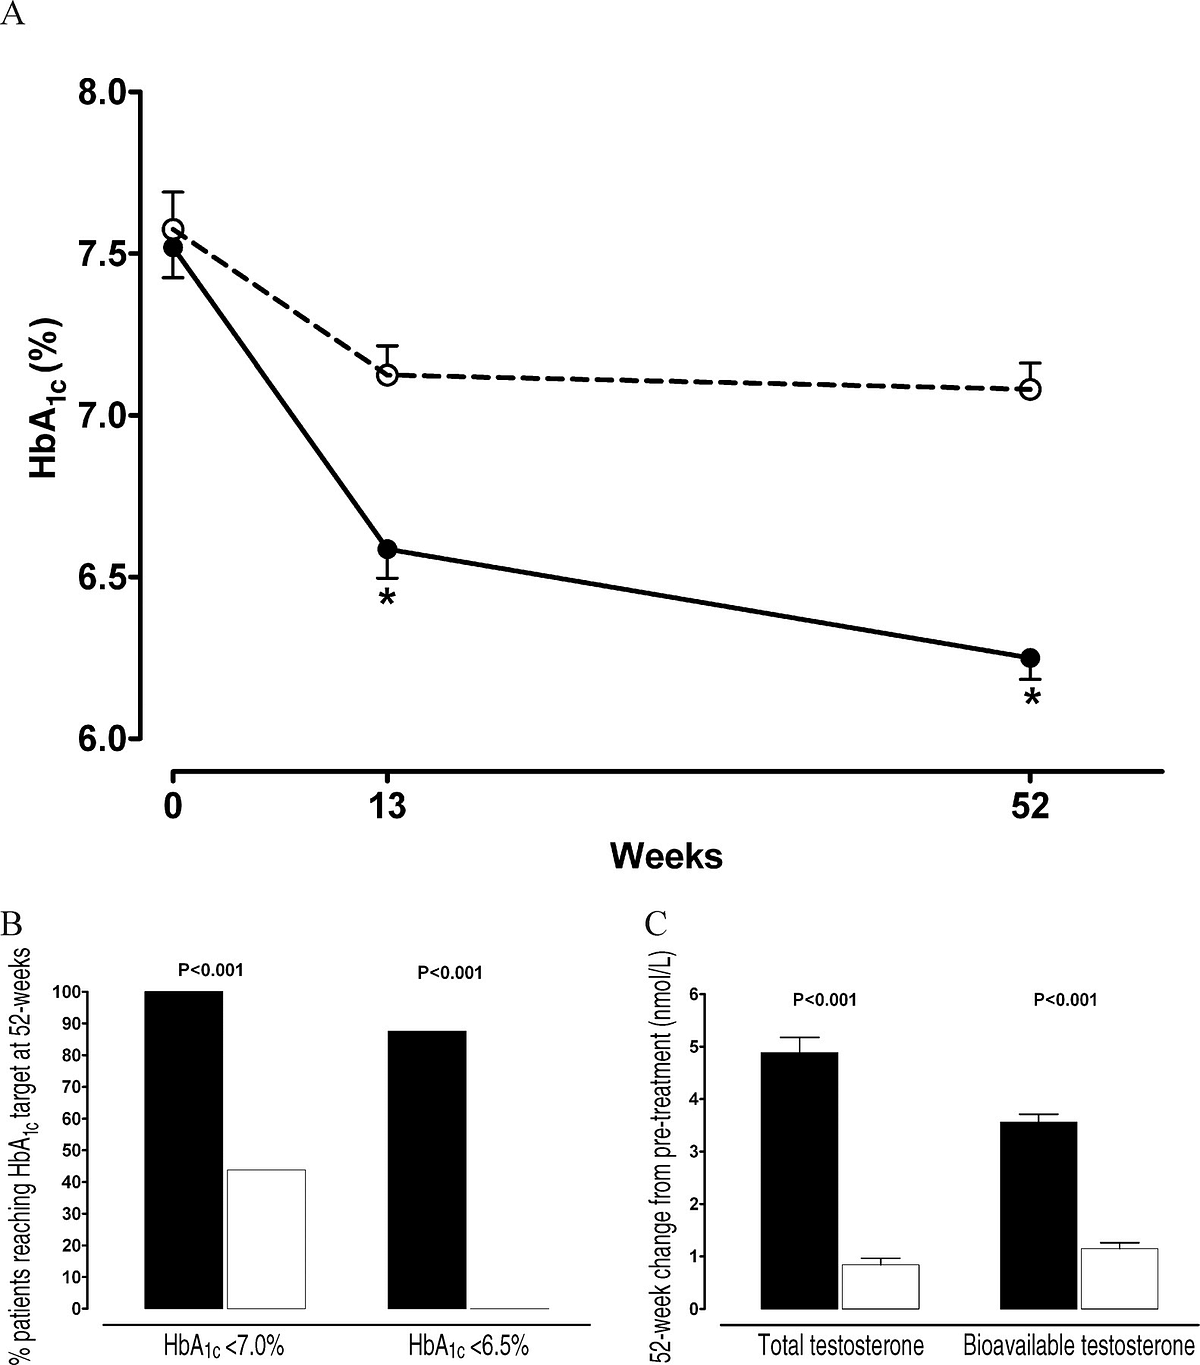 Figure 3 Glycemic control and testosterone profiles.(A)Glycosylated hemoglobin (HbA1c) values during the study periods. White circles indicate supervised D&E alone; black circles indicate supervised D&E in conjunction with transdermal testosterone administration.(B)Percentage of patients reaching at HbA1cvalues less than 7.0% (left side) and less than 6.5% (right side) White boxes indicate supervised D&E alone; black boxes, supervised D&E along with transdermal testosterone administration.(C)Change in total serum testosterone and bioavailable testosterone levels after 52‐week treatment with supervised D&E (white boxes) or in combination with transdermal testosterone administration (black boxes). Data represent mean and SE. * P < .001.